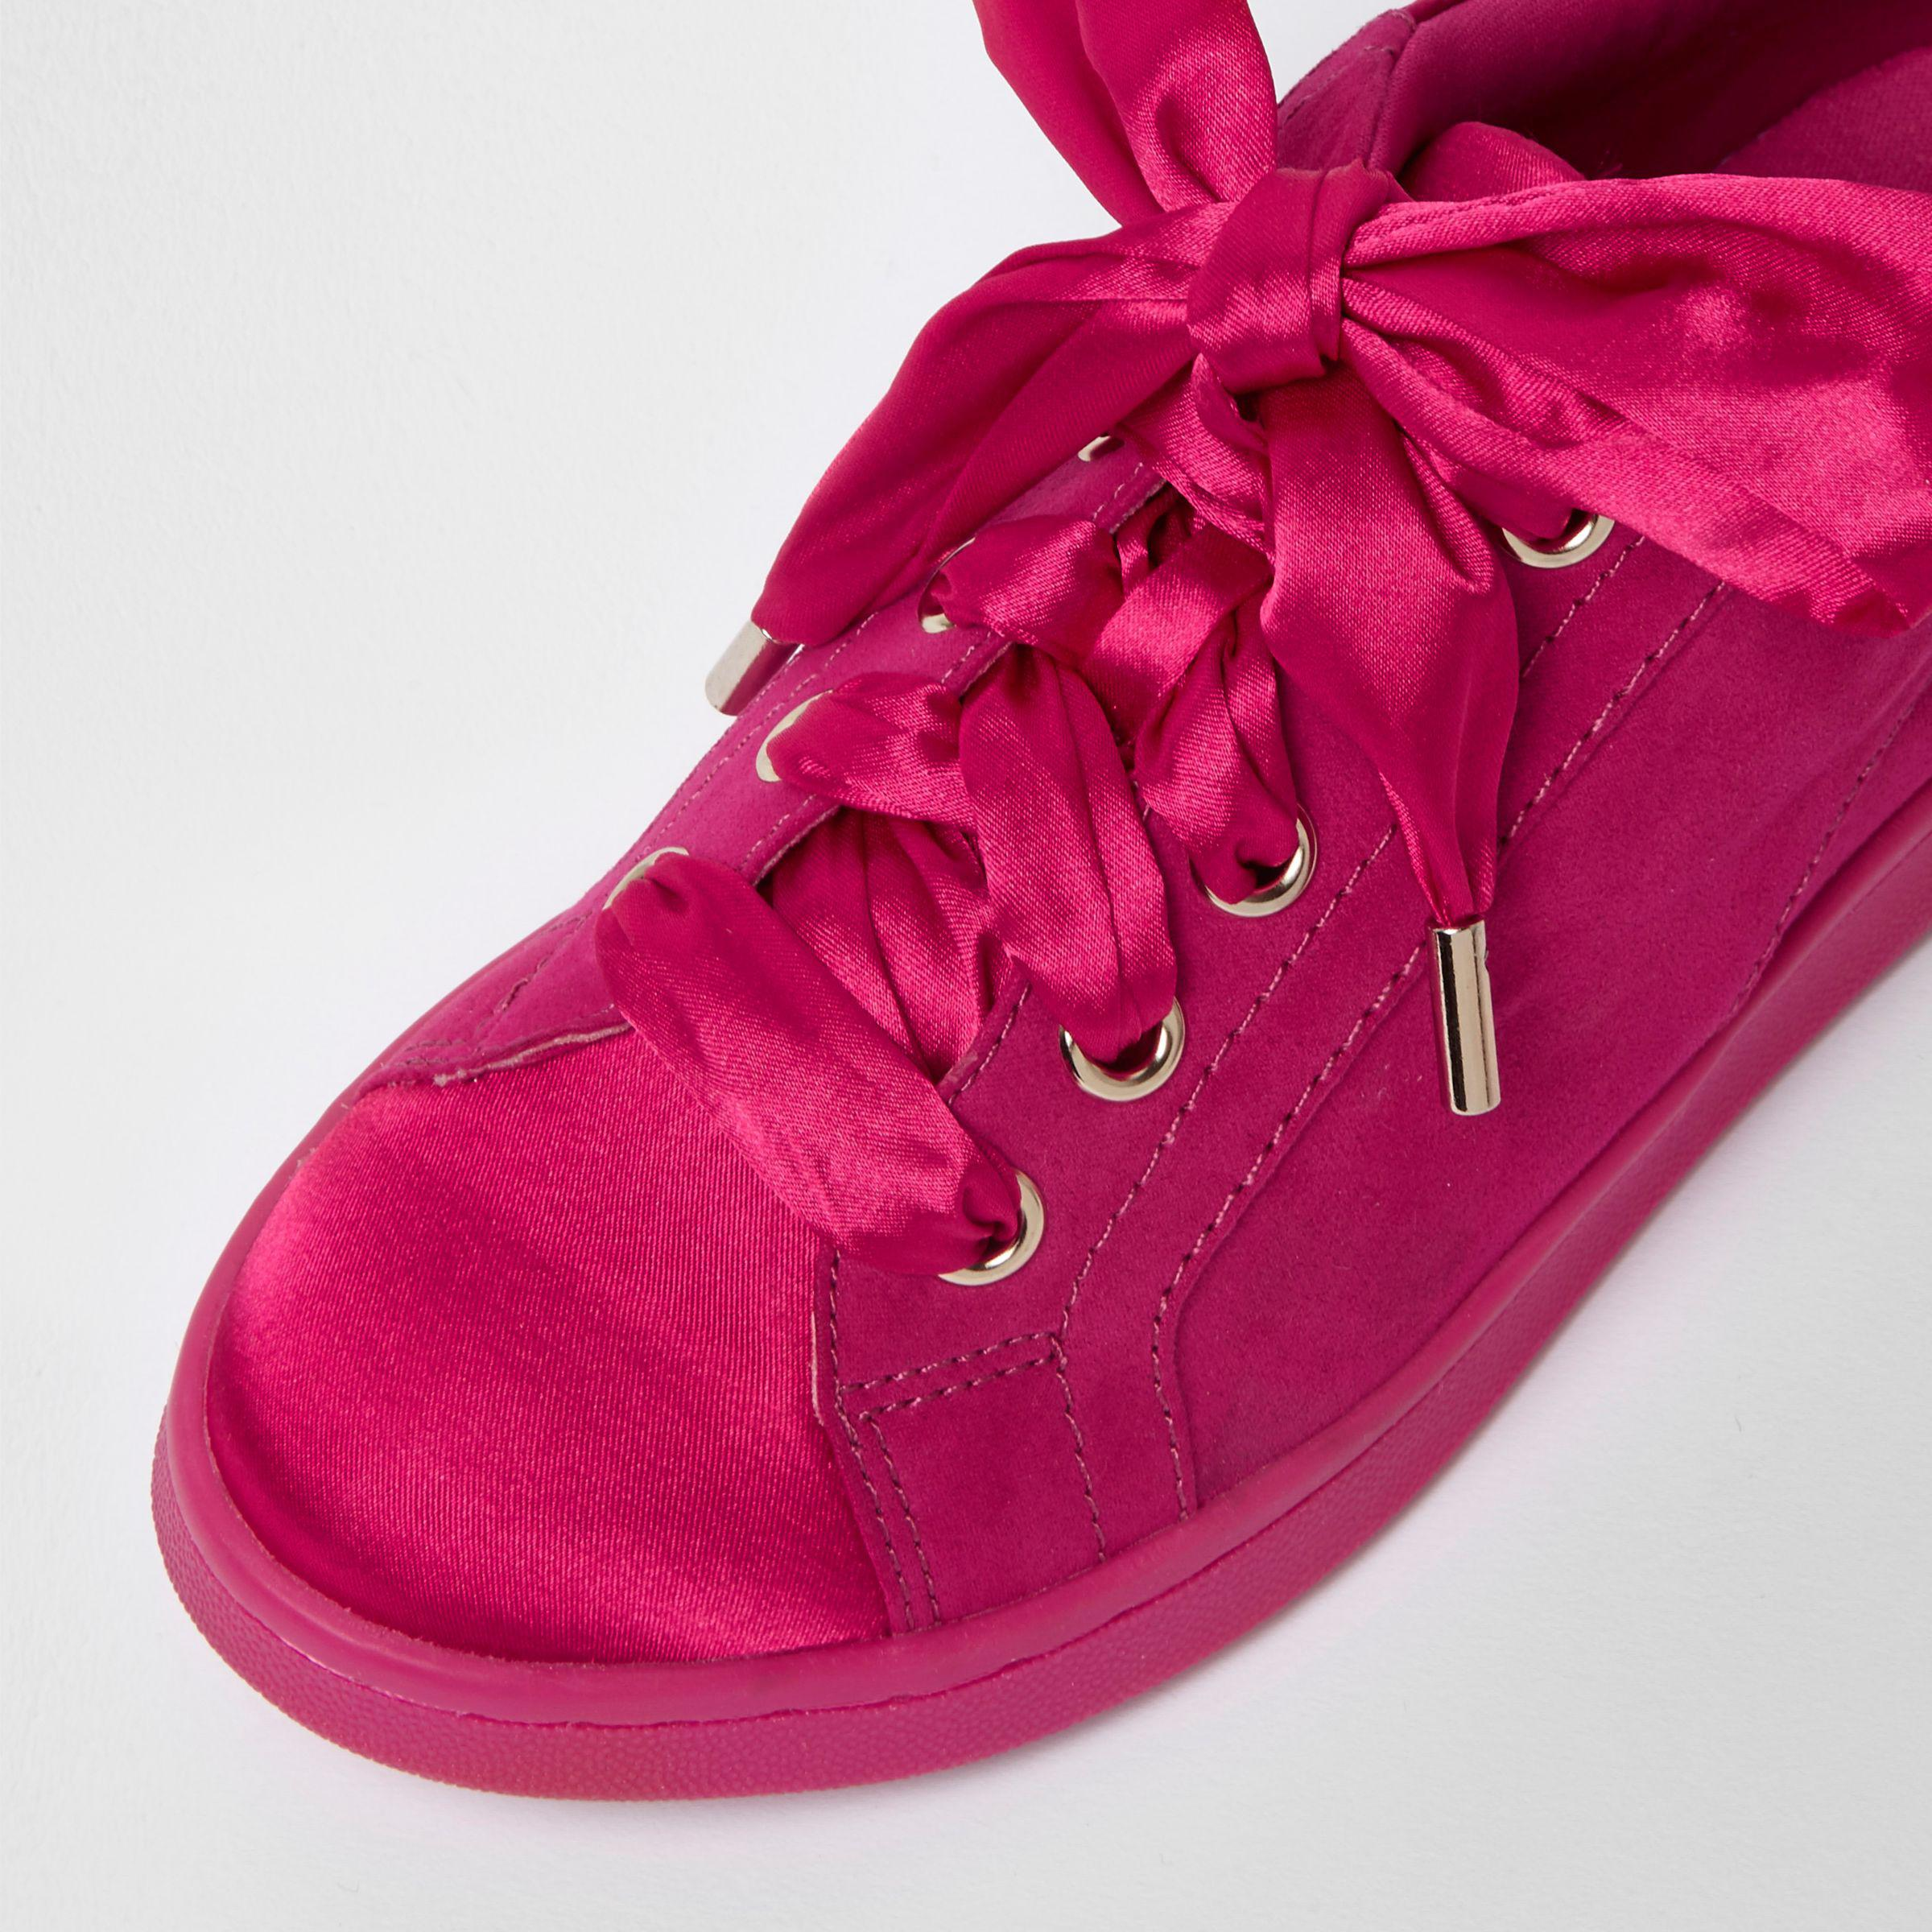 River Island Satin Bright Pink Ribbon Lace-up Trainers